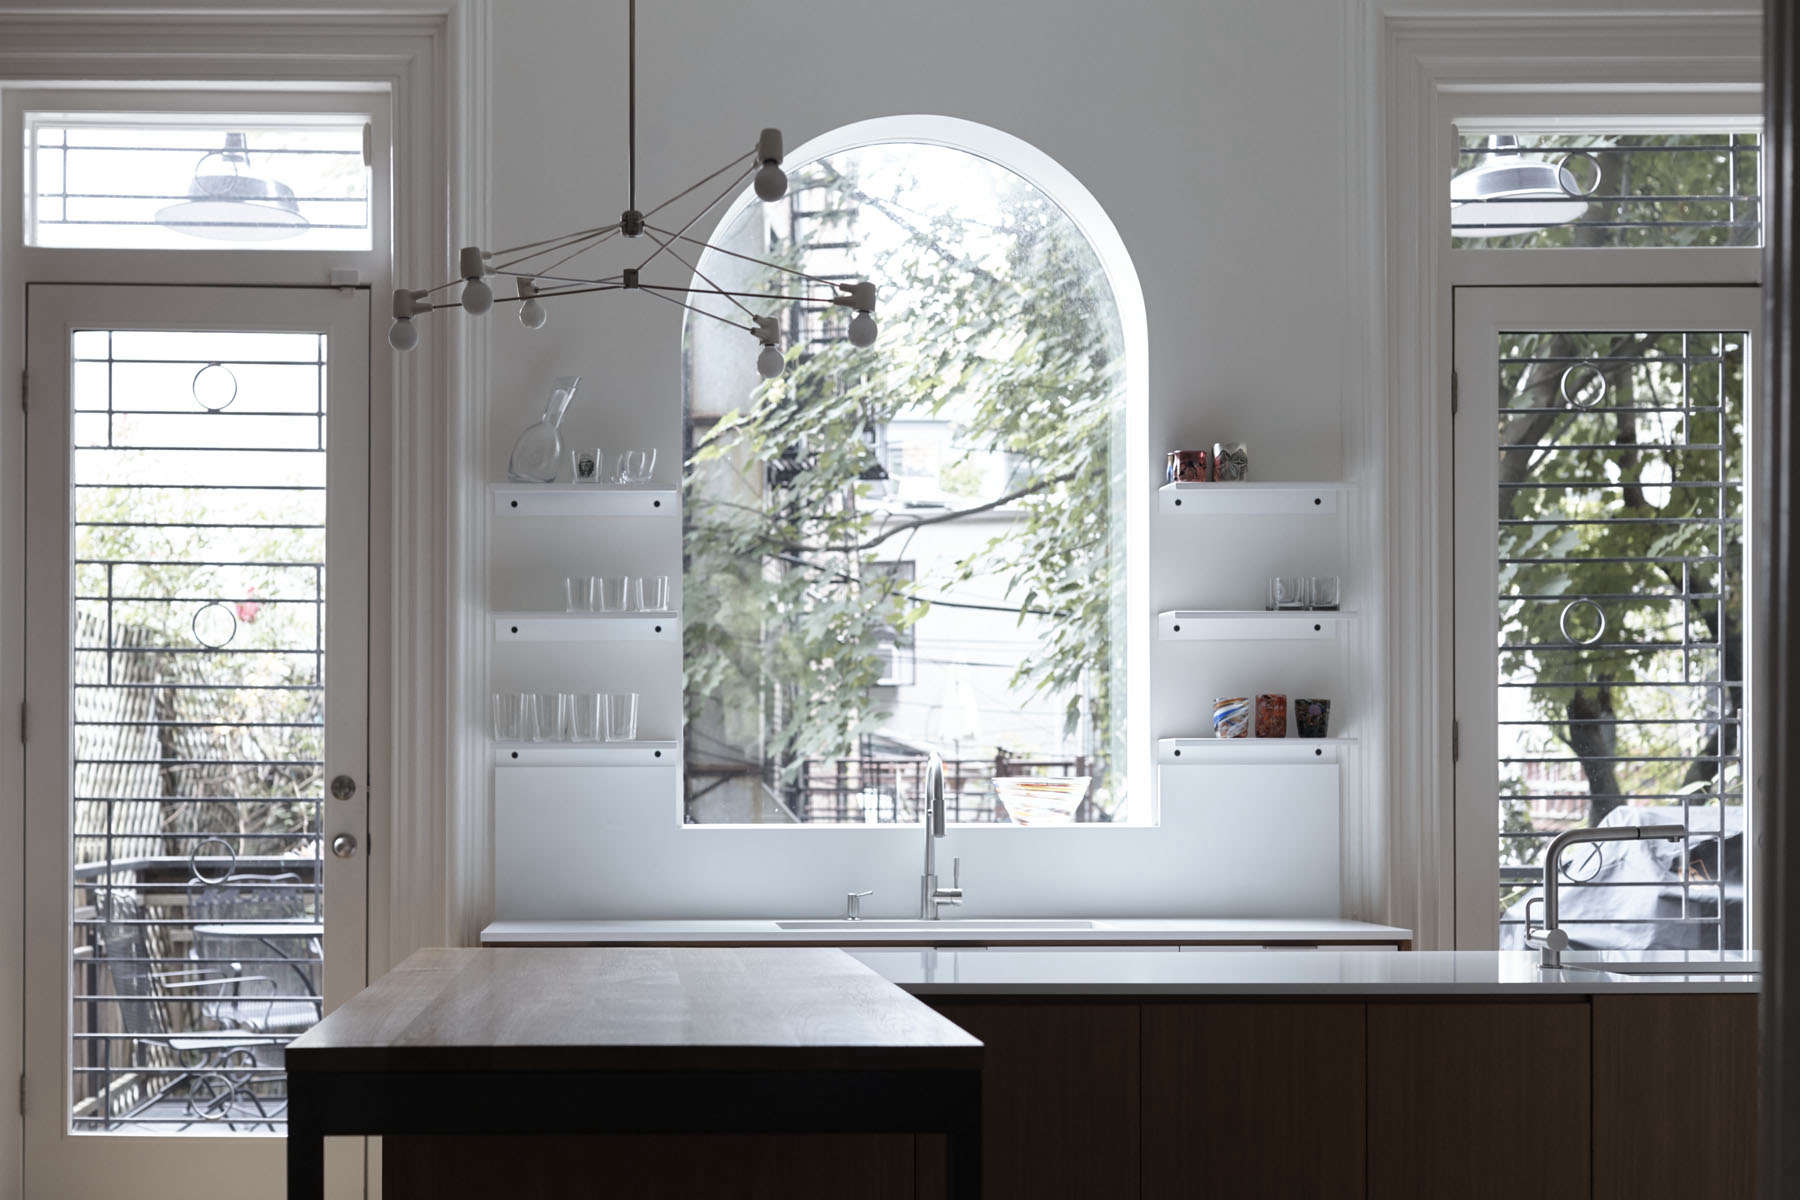 Large arched window and glass-paneled door and windows in a Brooklyn kitchen remodel by architect Shauna McManus